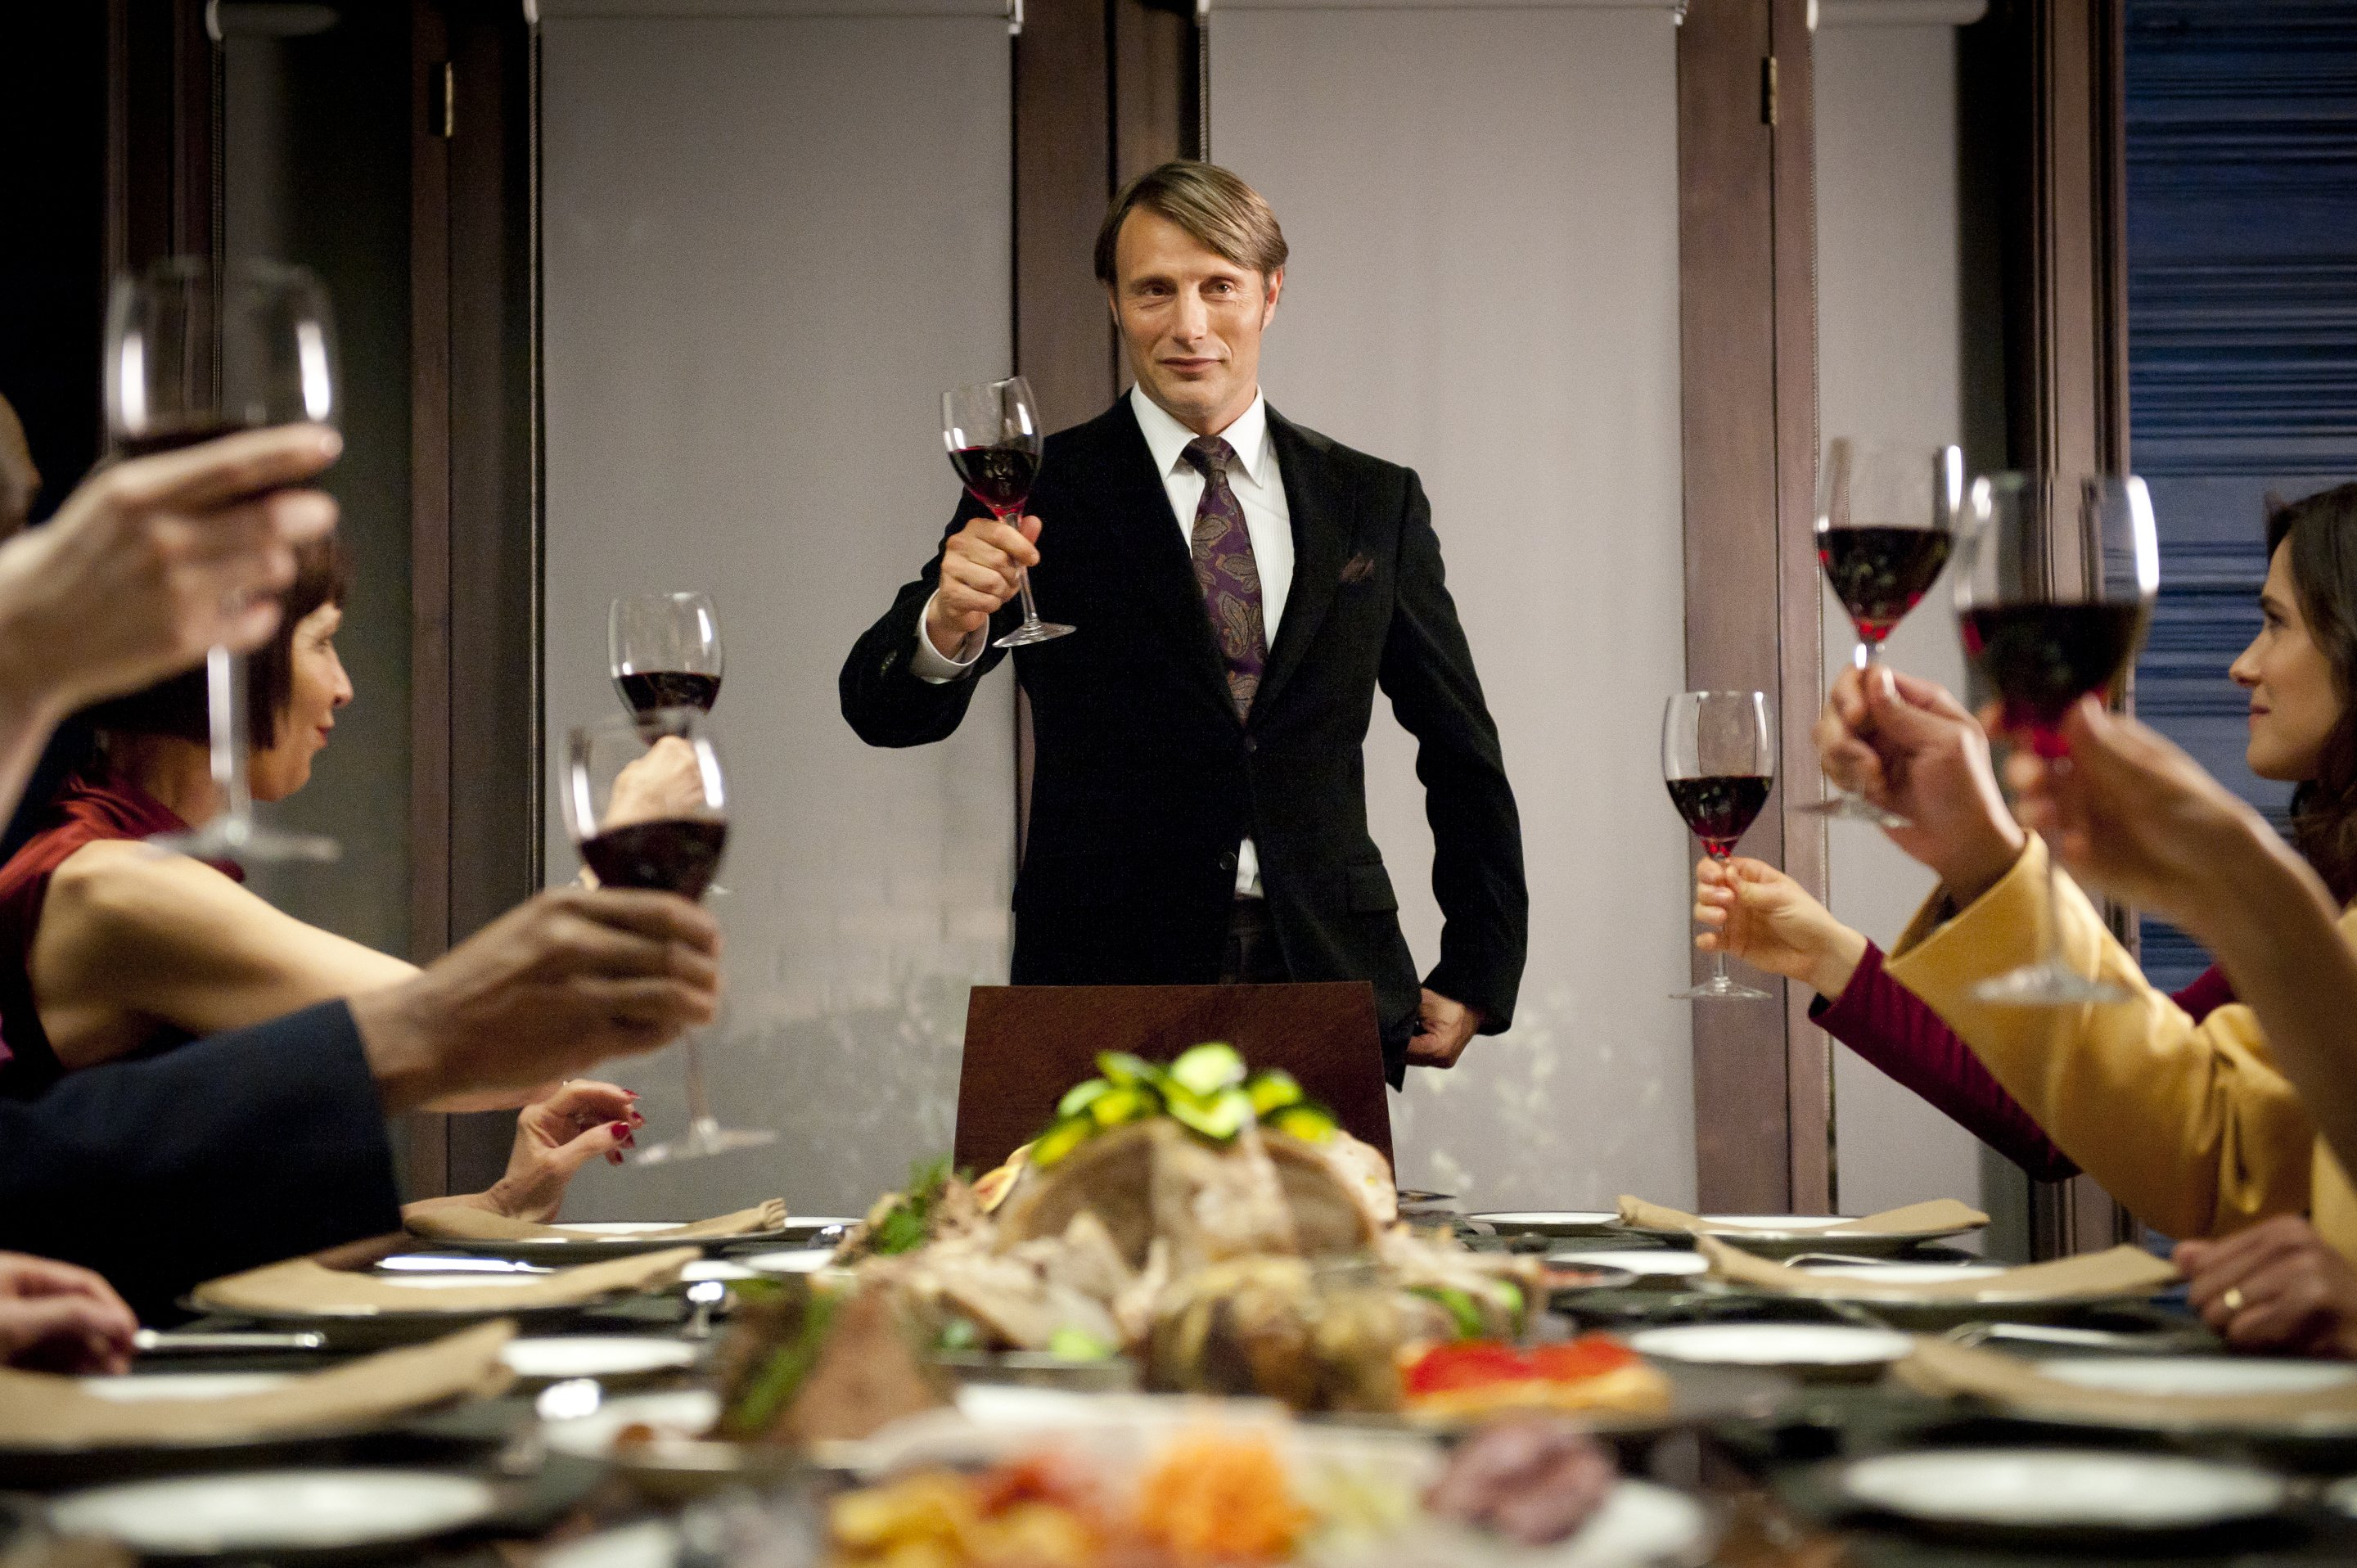 hannibal-dinner-is-served.jpg